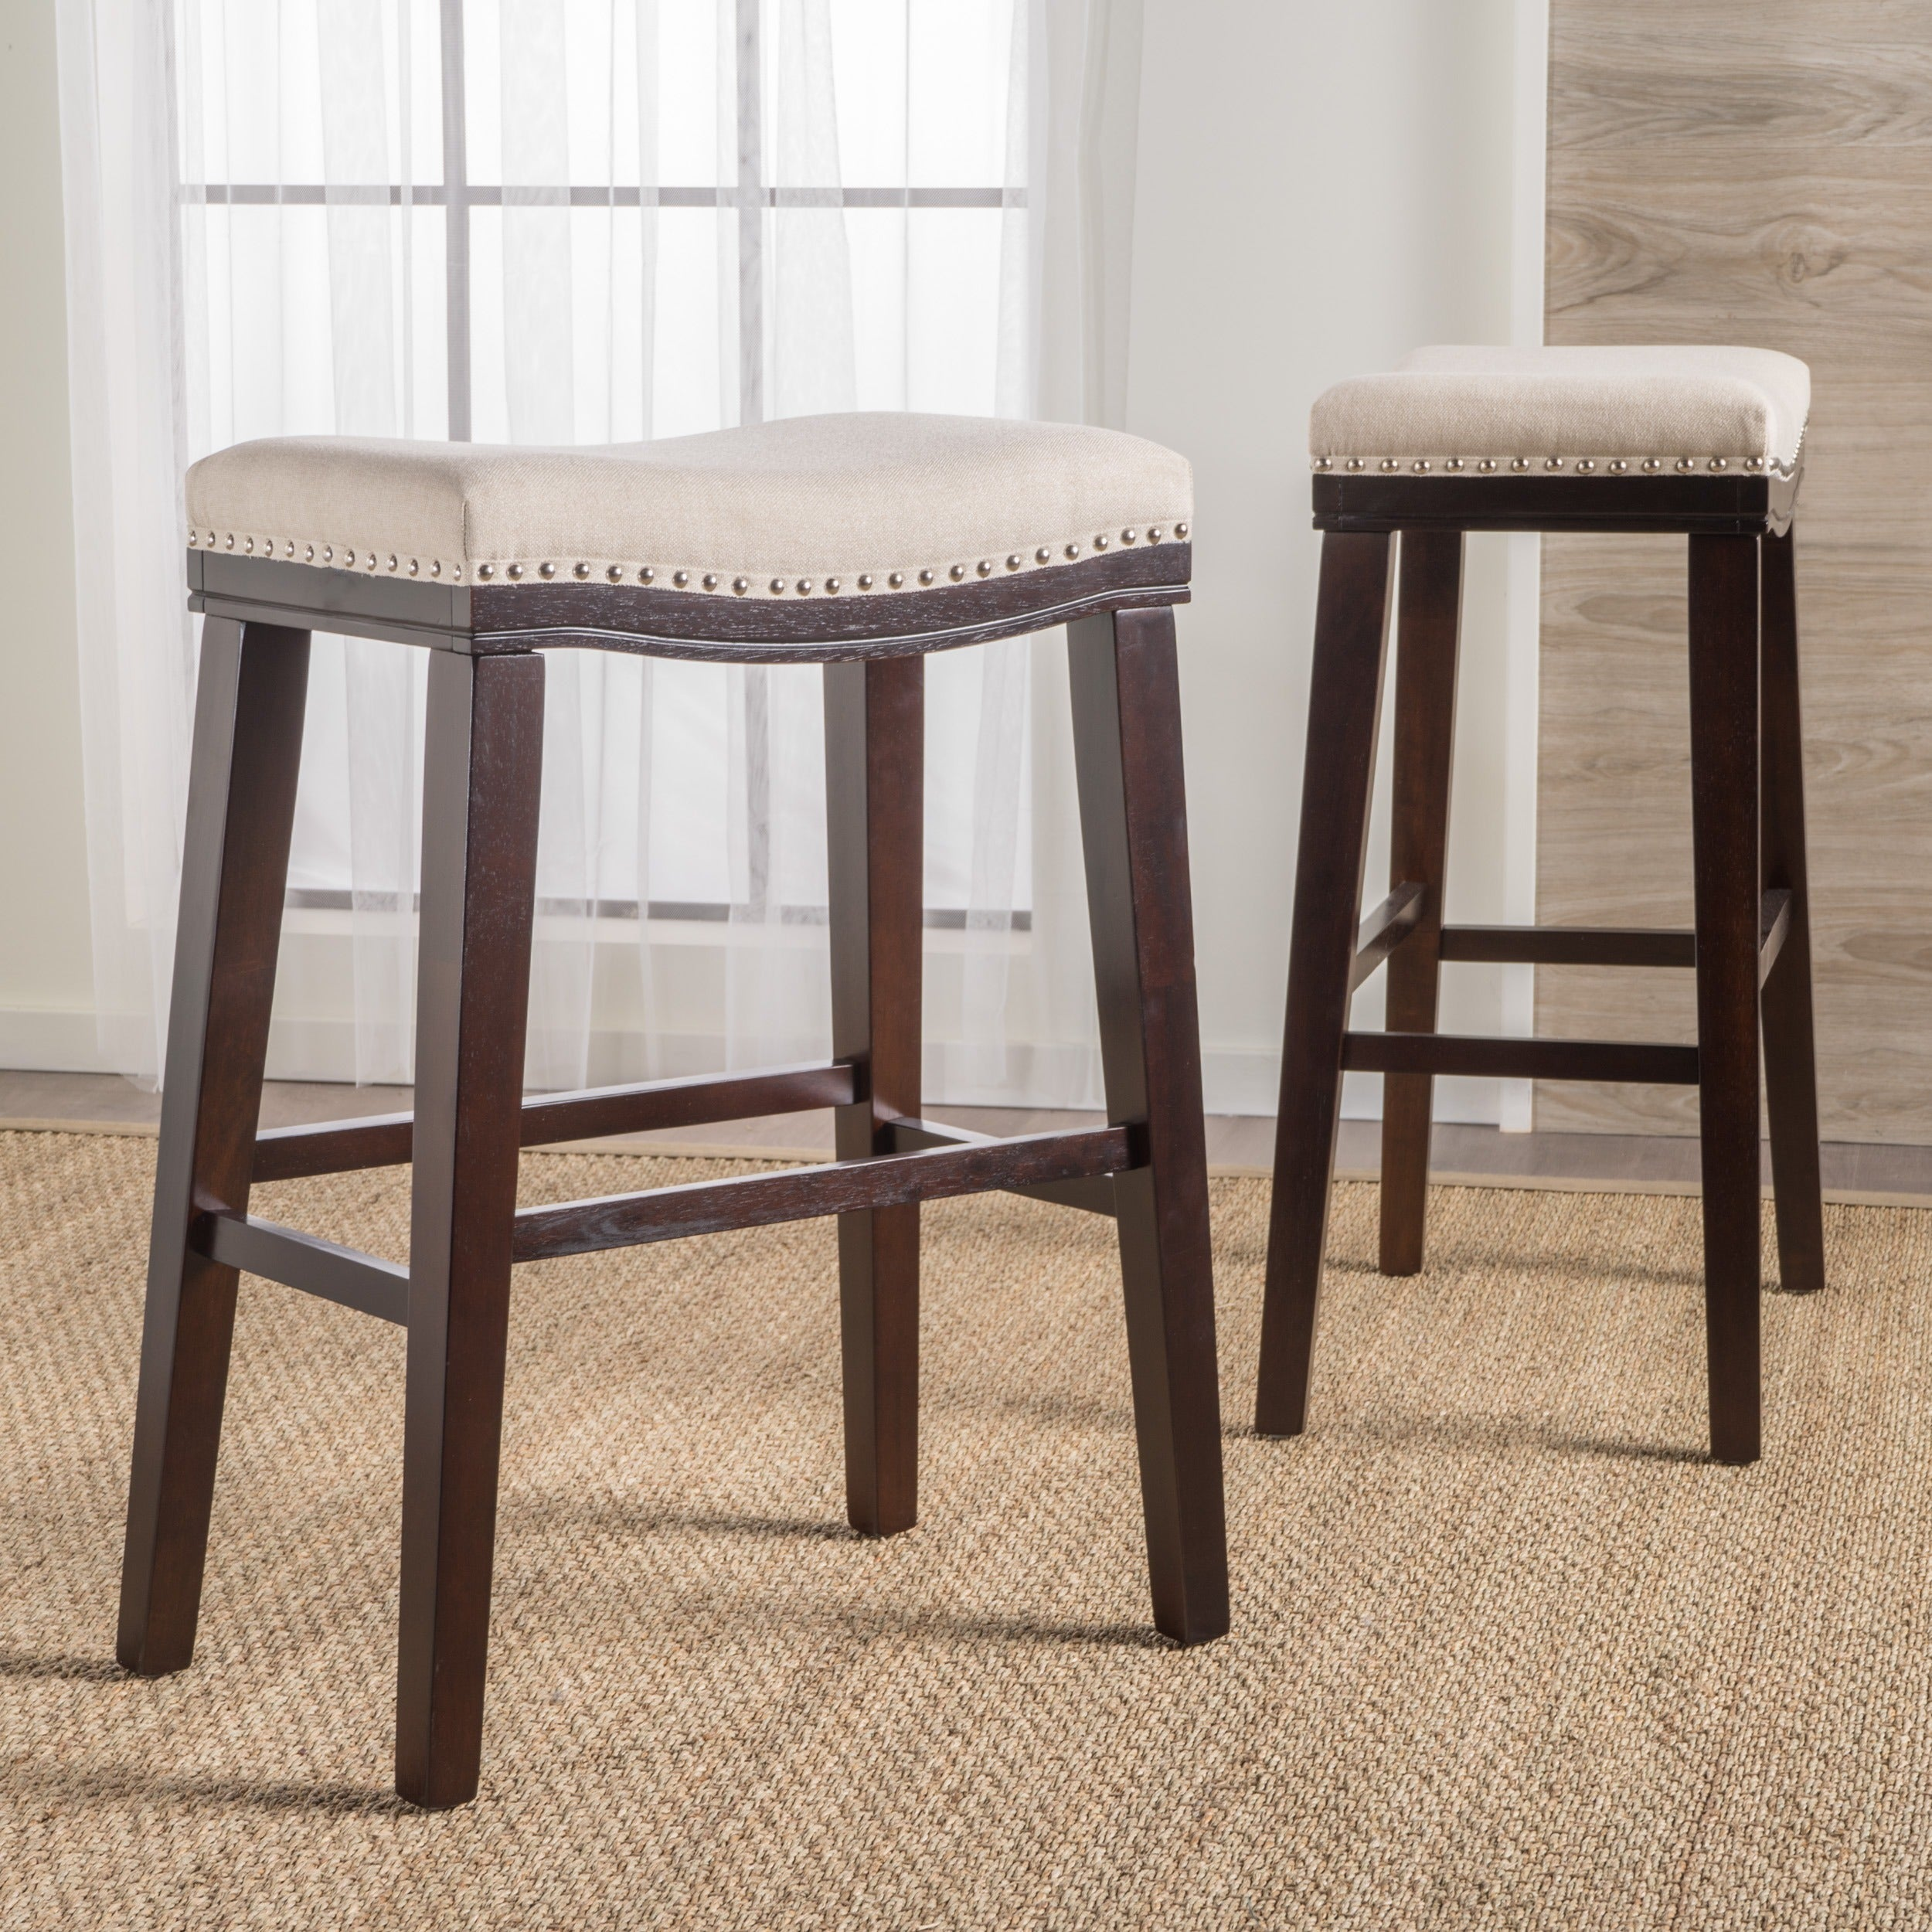 Rosalie 30 Inchsaddle Studded Fabric Barstool Set Of 2 By Christopher Knight Home On Free Shipping Today 15073026